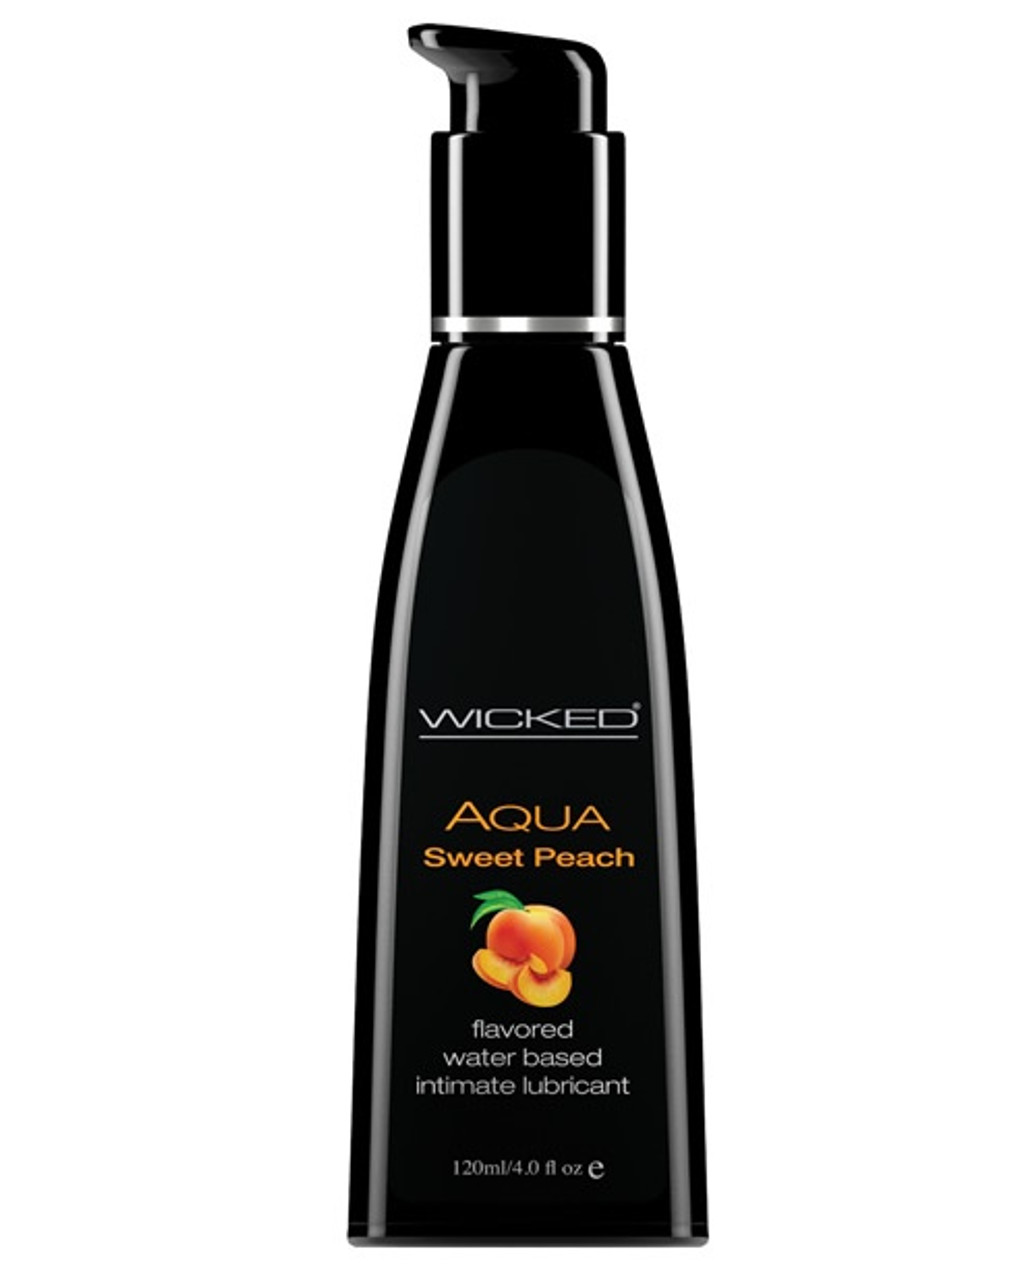 Kissable, Lickable and Delicious! AQUA Sweet Peachadds subtle natural flavors to enhance oral pleasures.